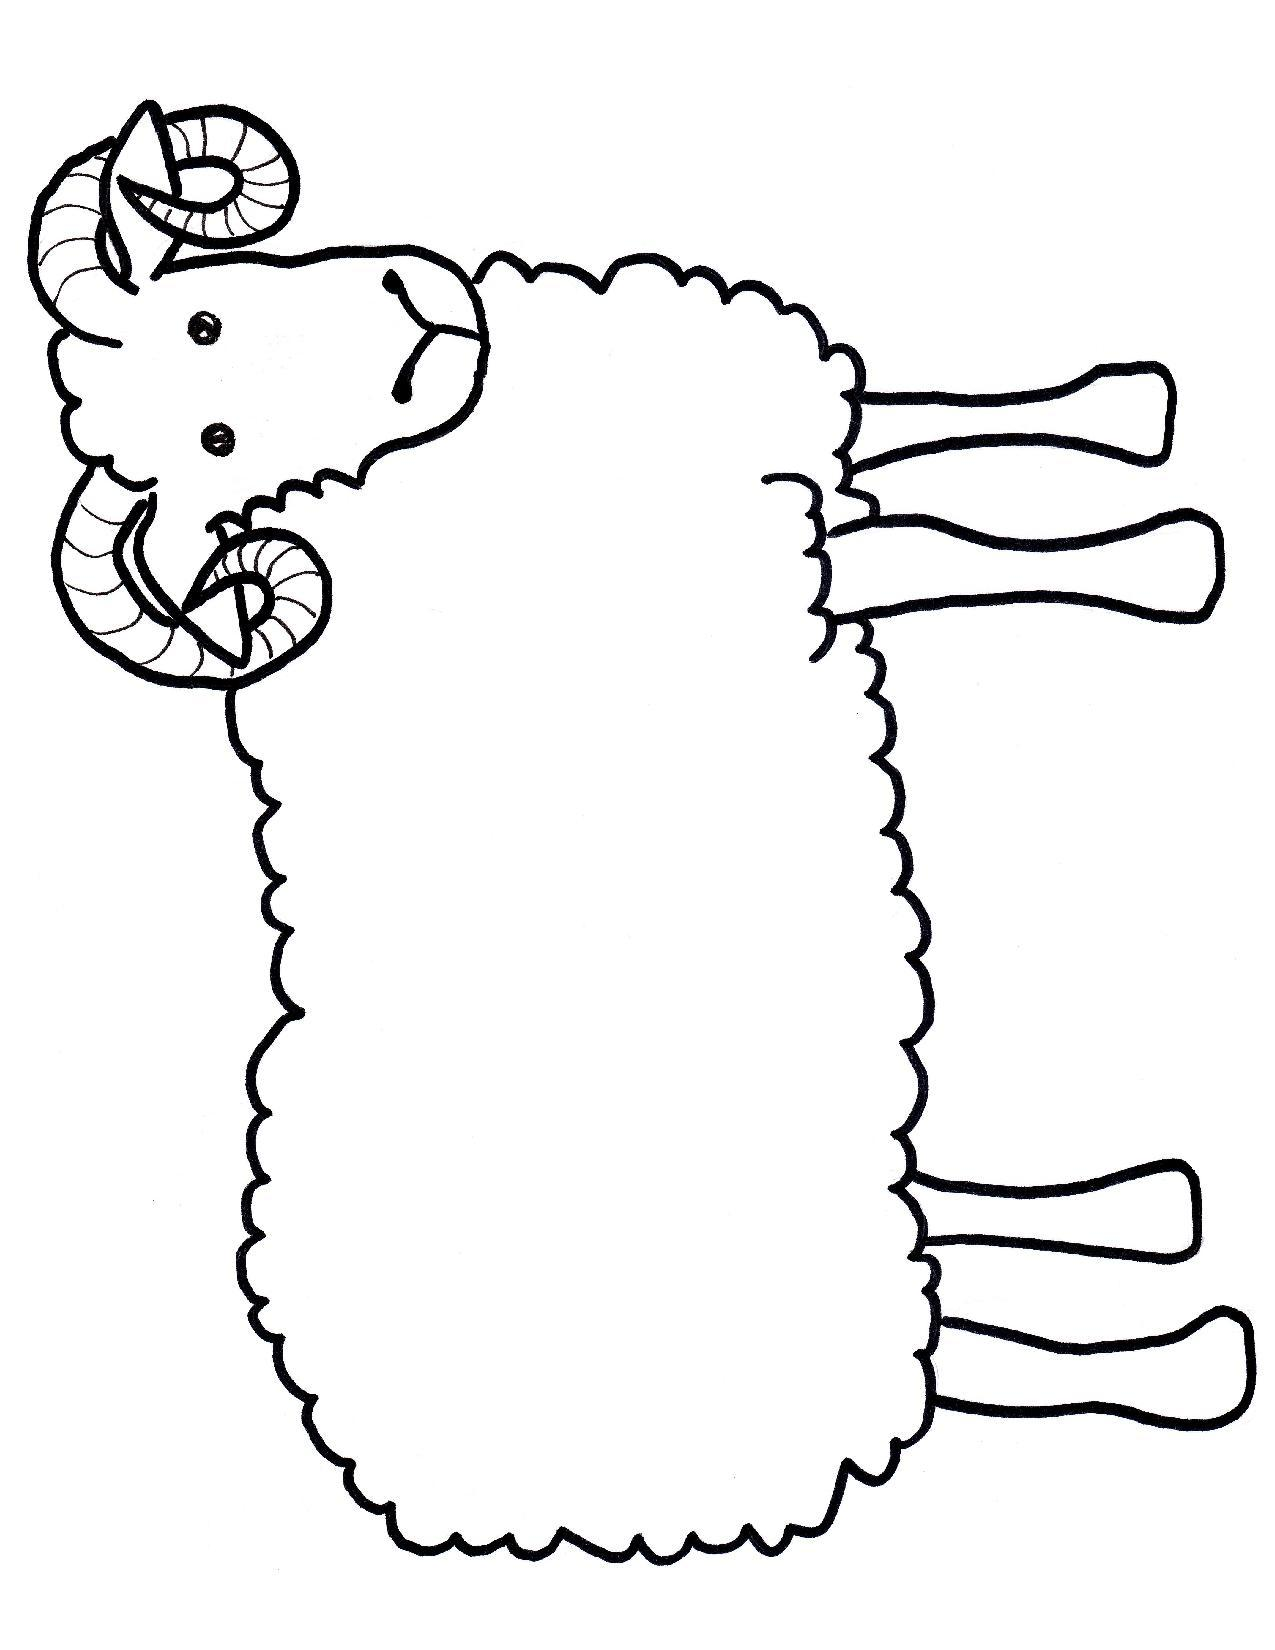 Printable Templates Of Sheep - ClipArt Best